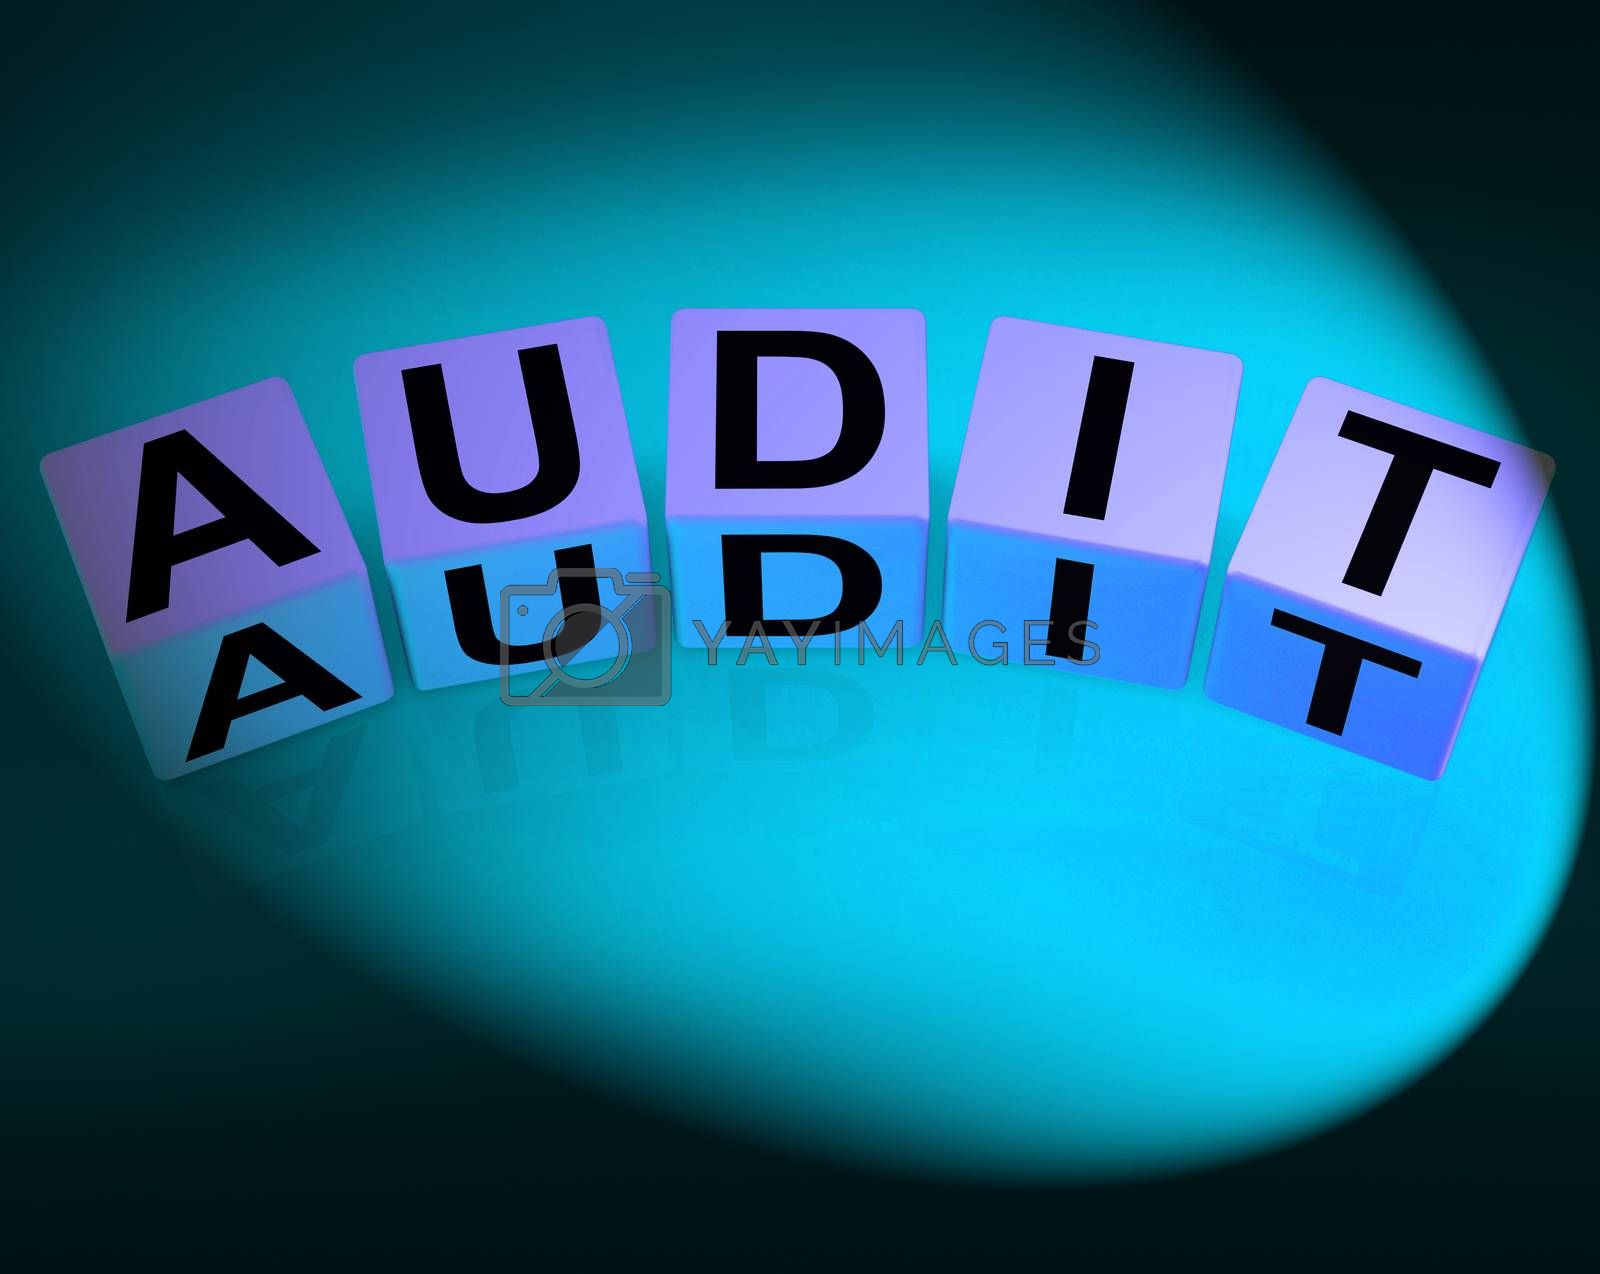 Audit Dice Refer to Investigation Examination and Scrutiny by stuartmiles